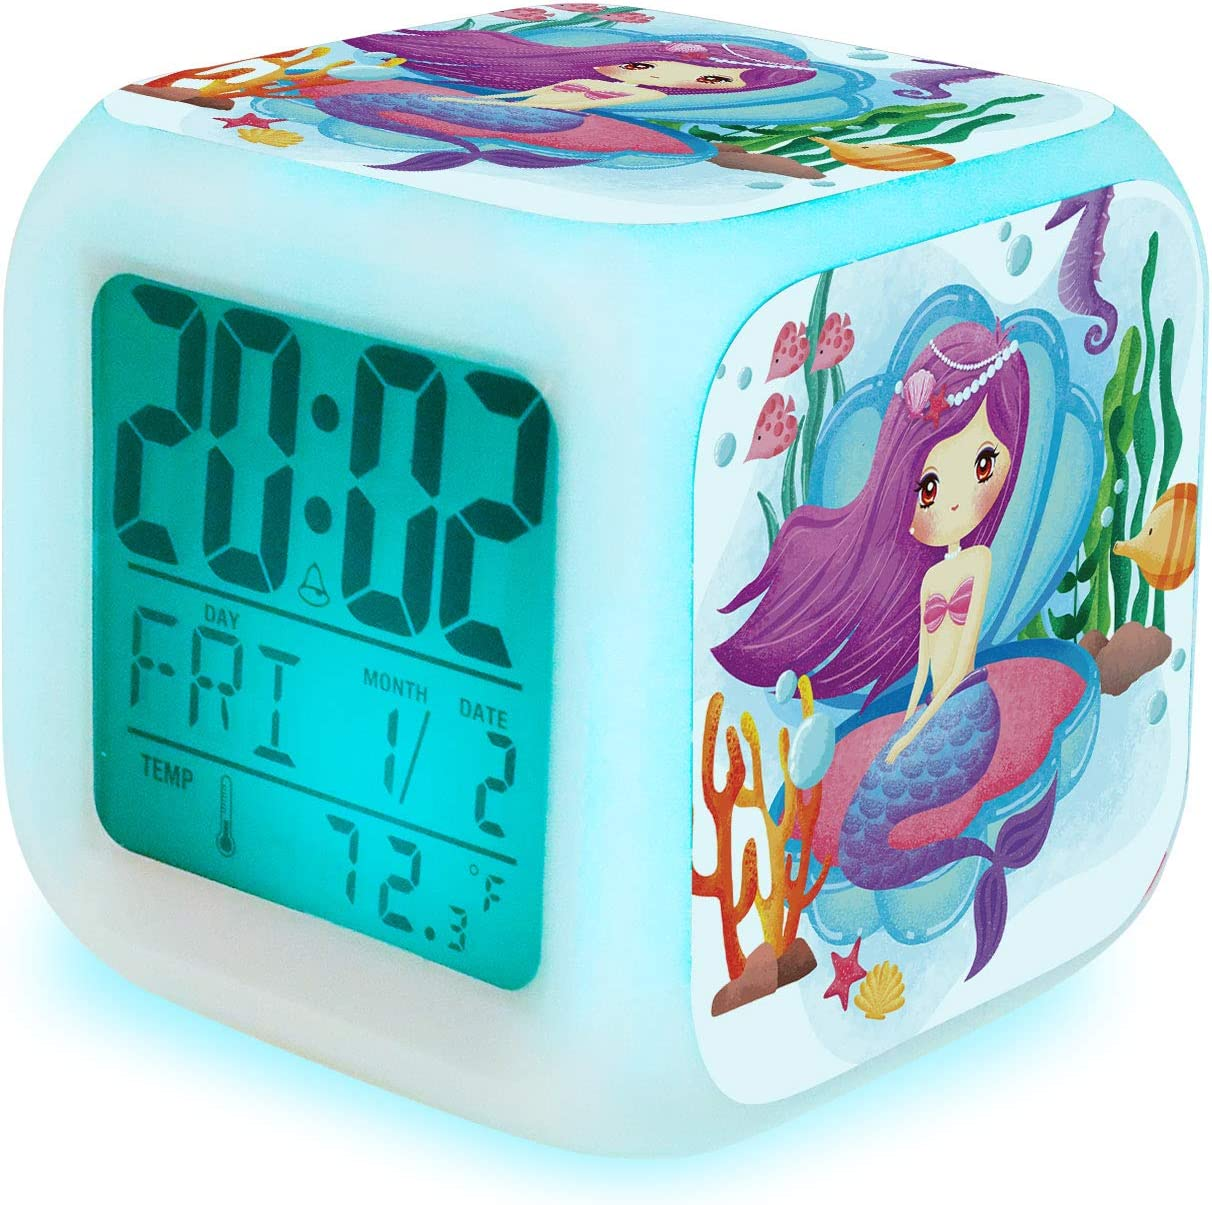 Fuyamp Mermaid Alarm Clock for Girls, Kids Digital Alarm Clock with 7 Color LED Light Wake Up Clock with Mermaid Girl Bedroom Decor for Christmas, School Begins and Birthday Gifts